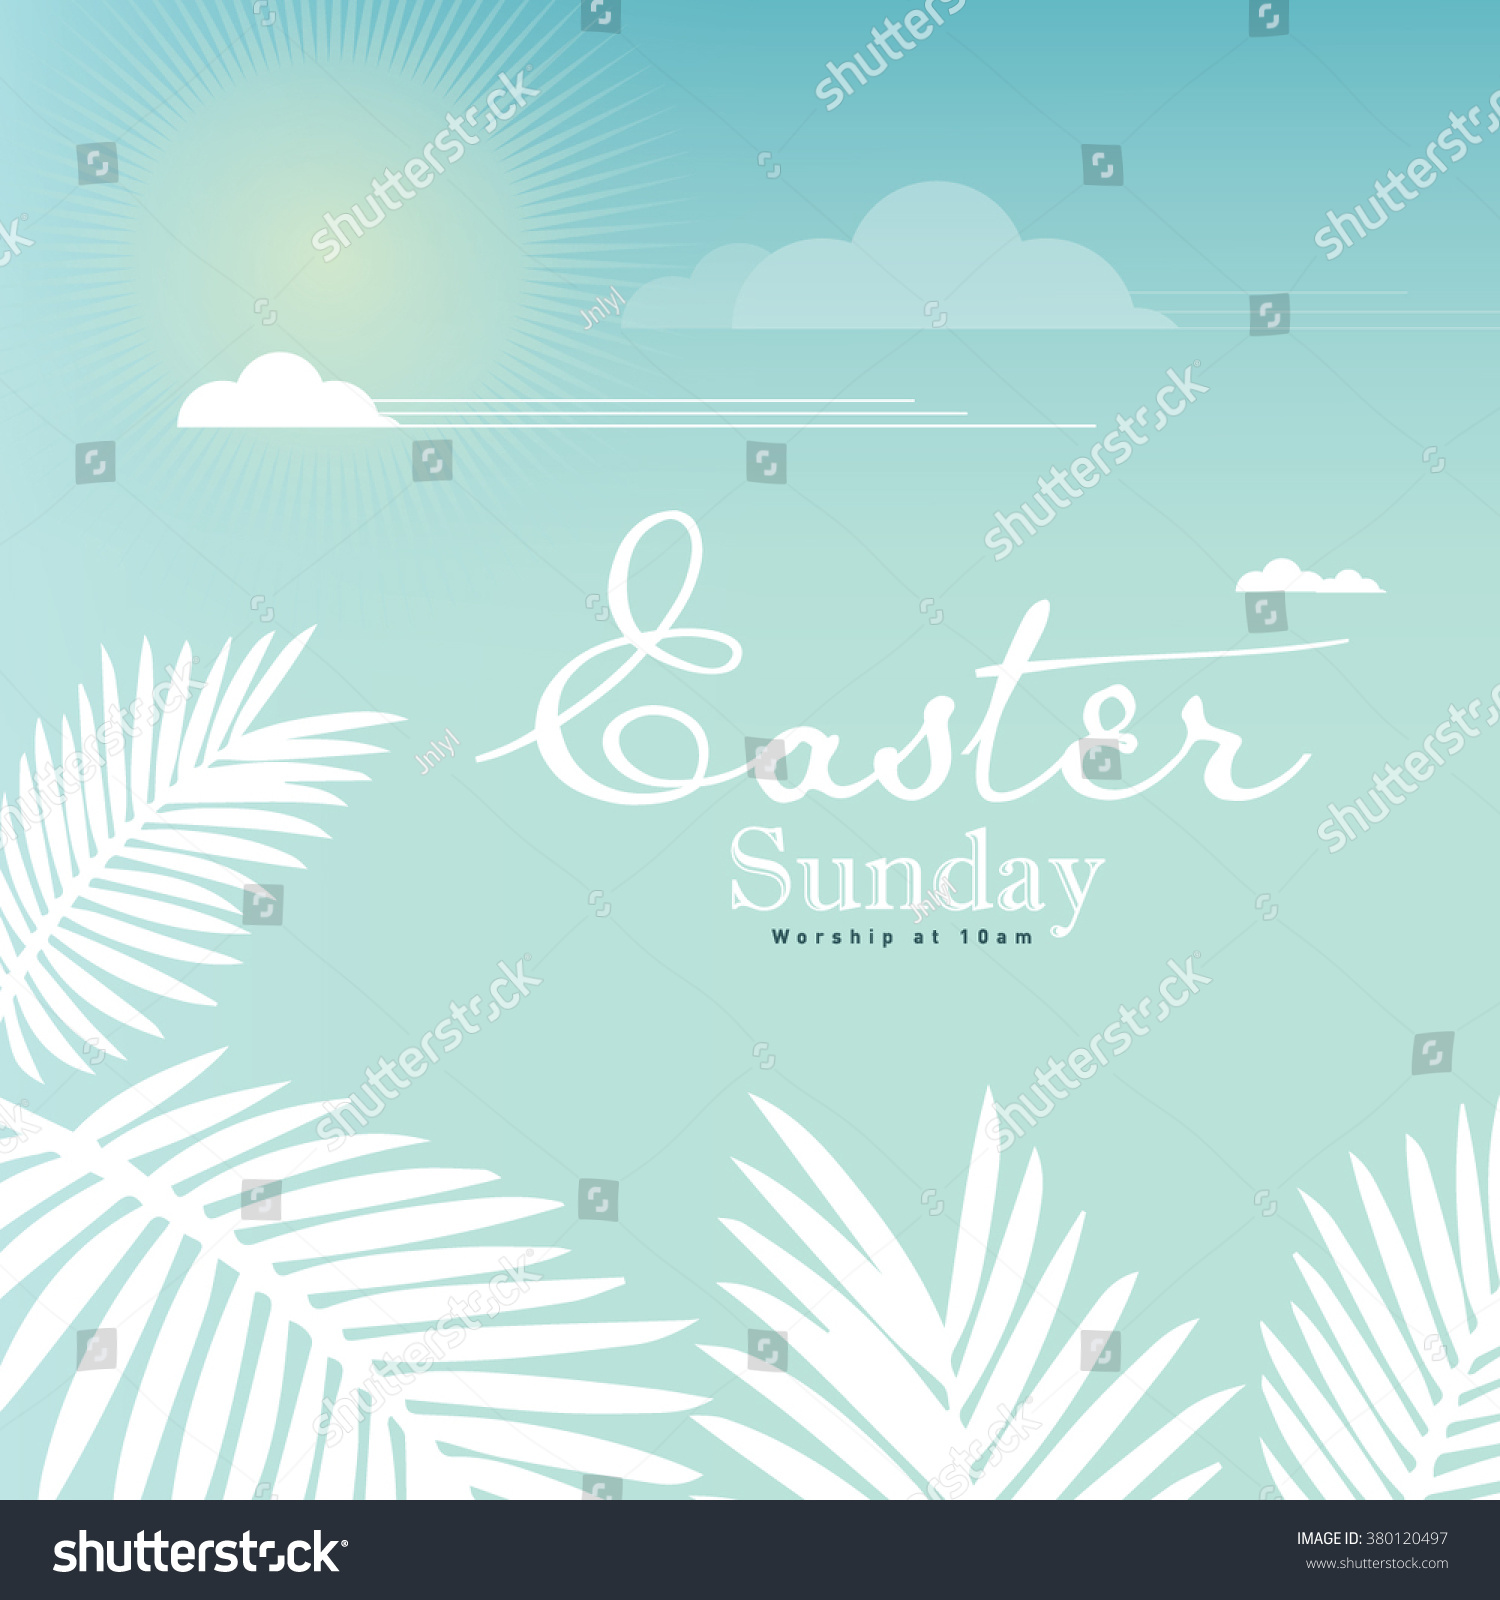 Happy Easter Day Greetings Church Poster Stock Vector Royalty Free